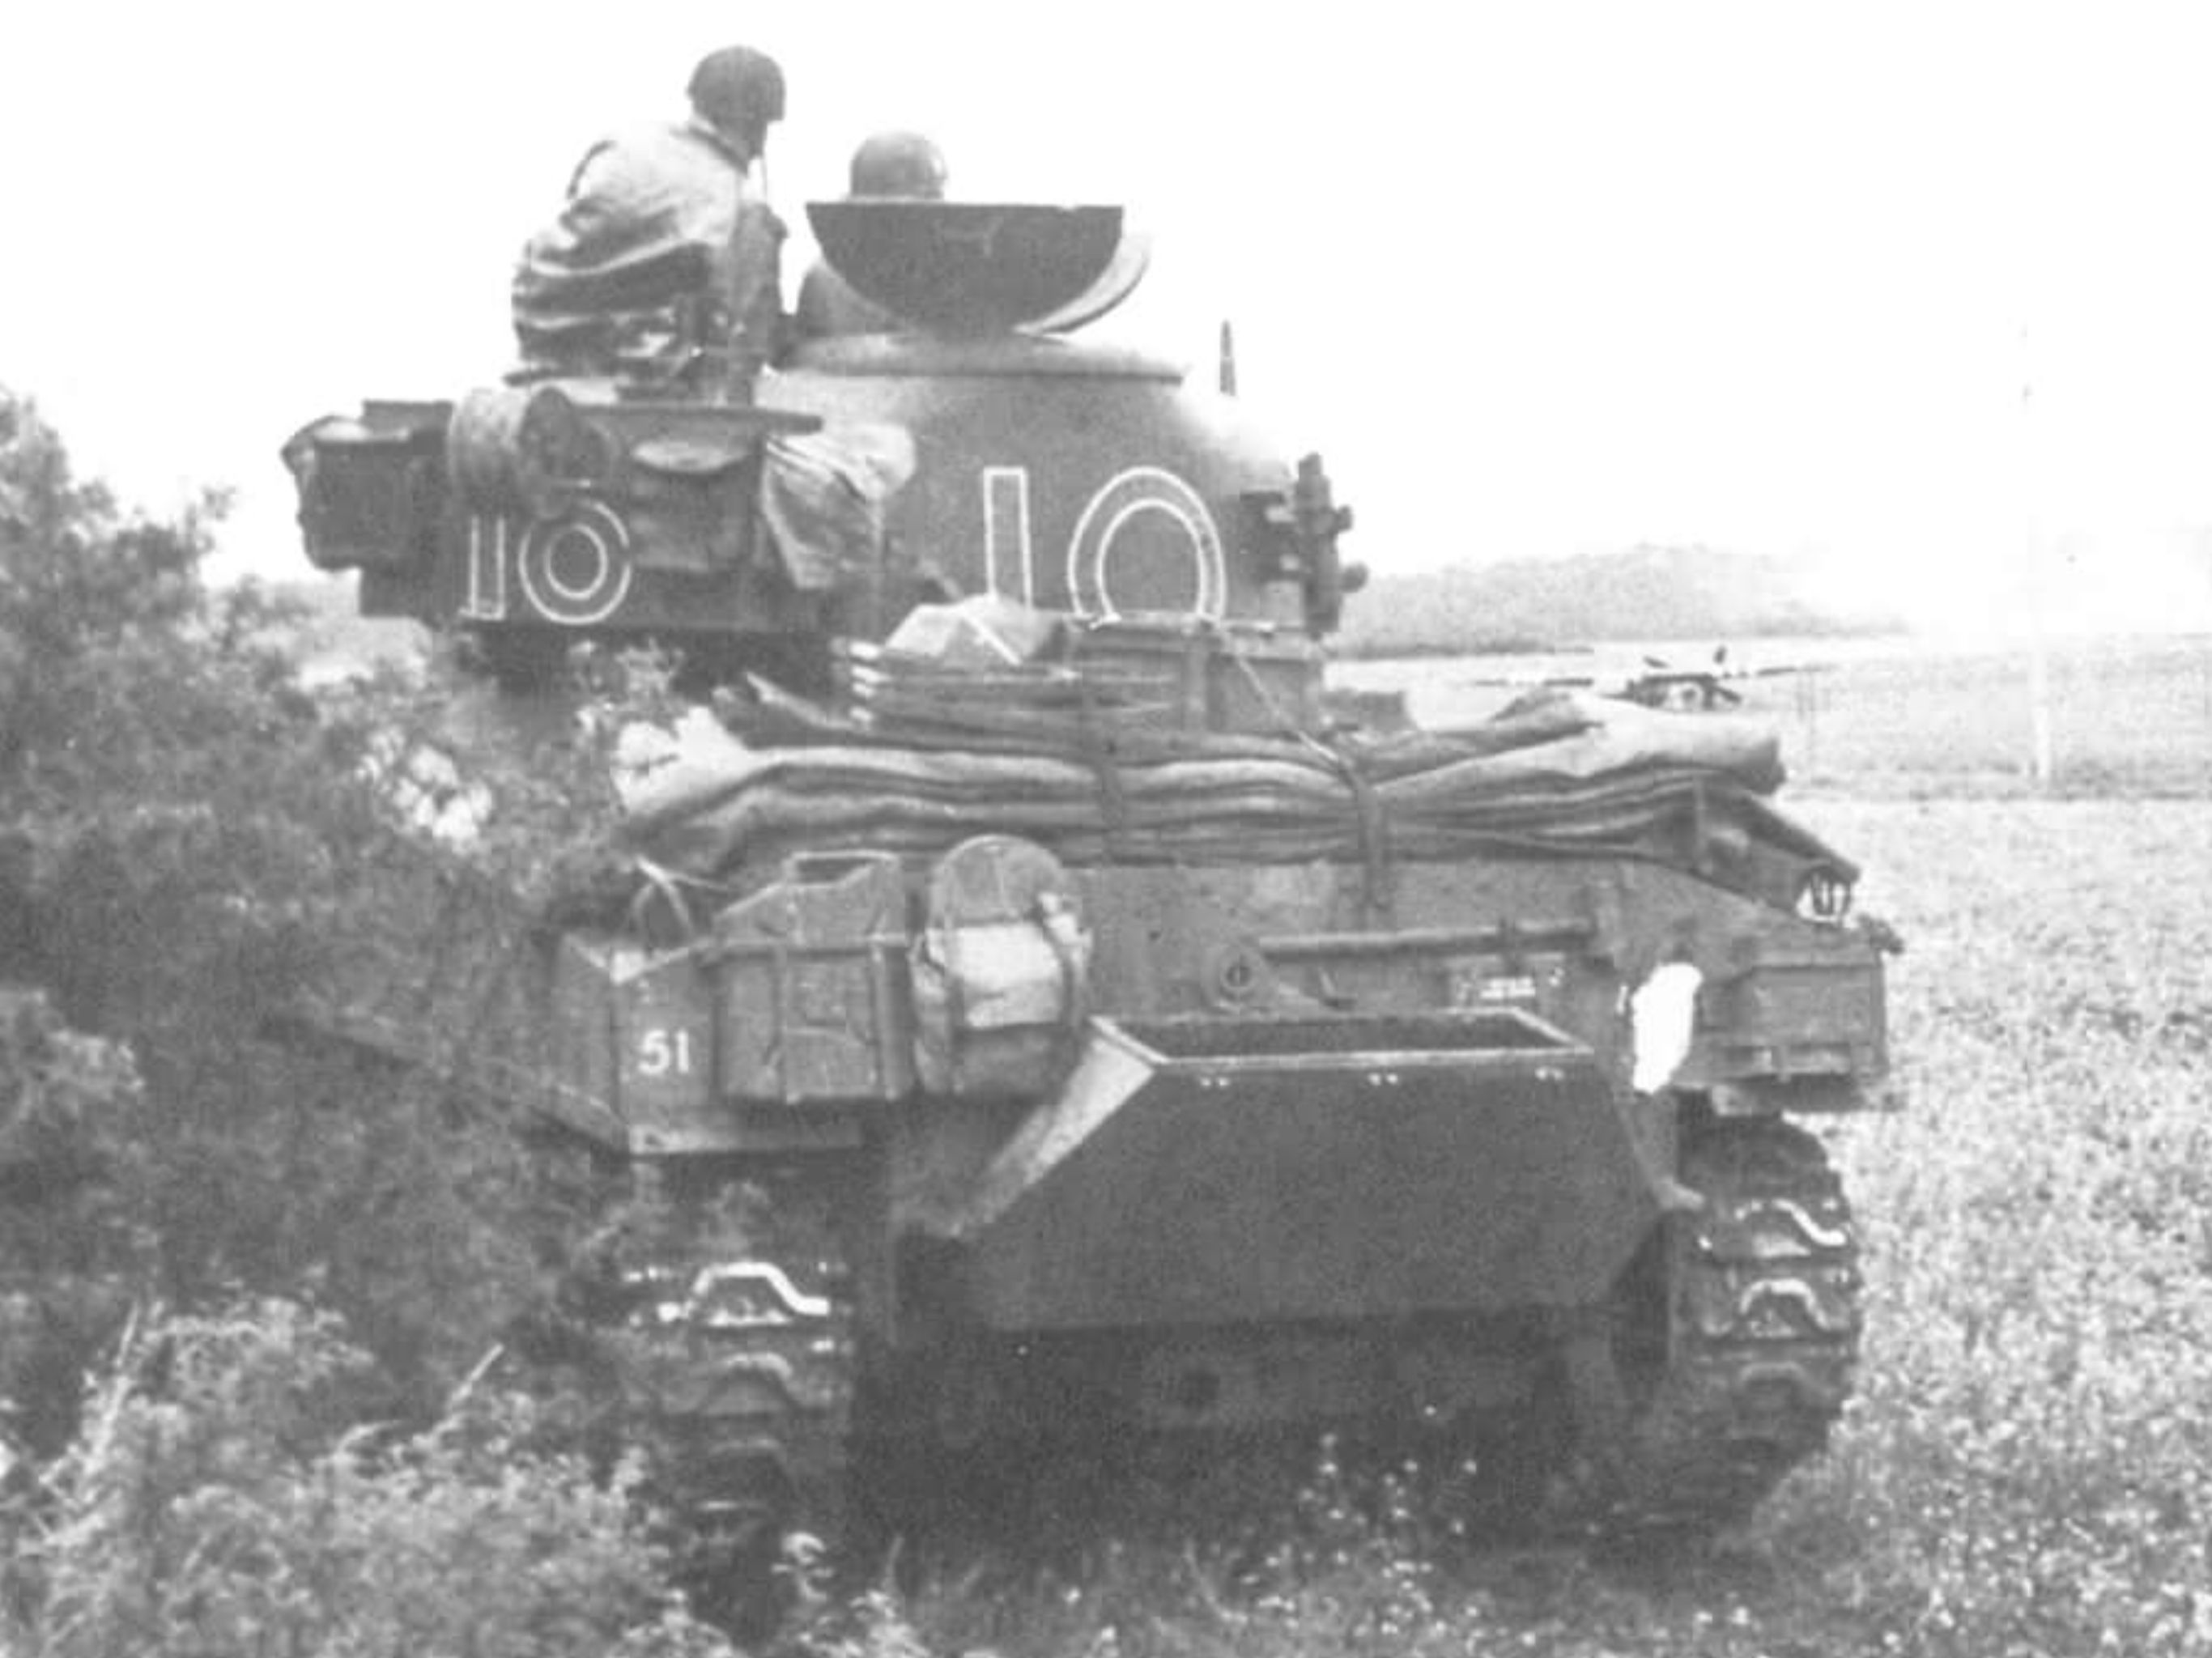 Pin by j k poole on Sherman Tank workhorse of the allies